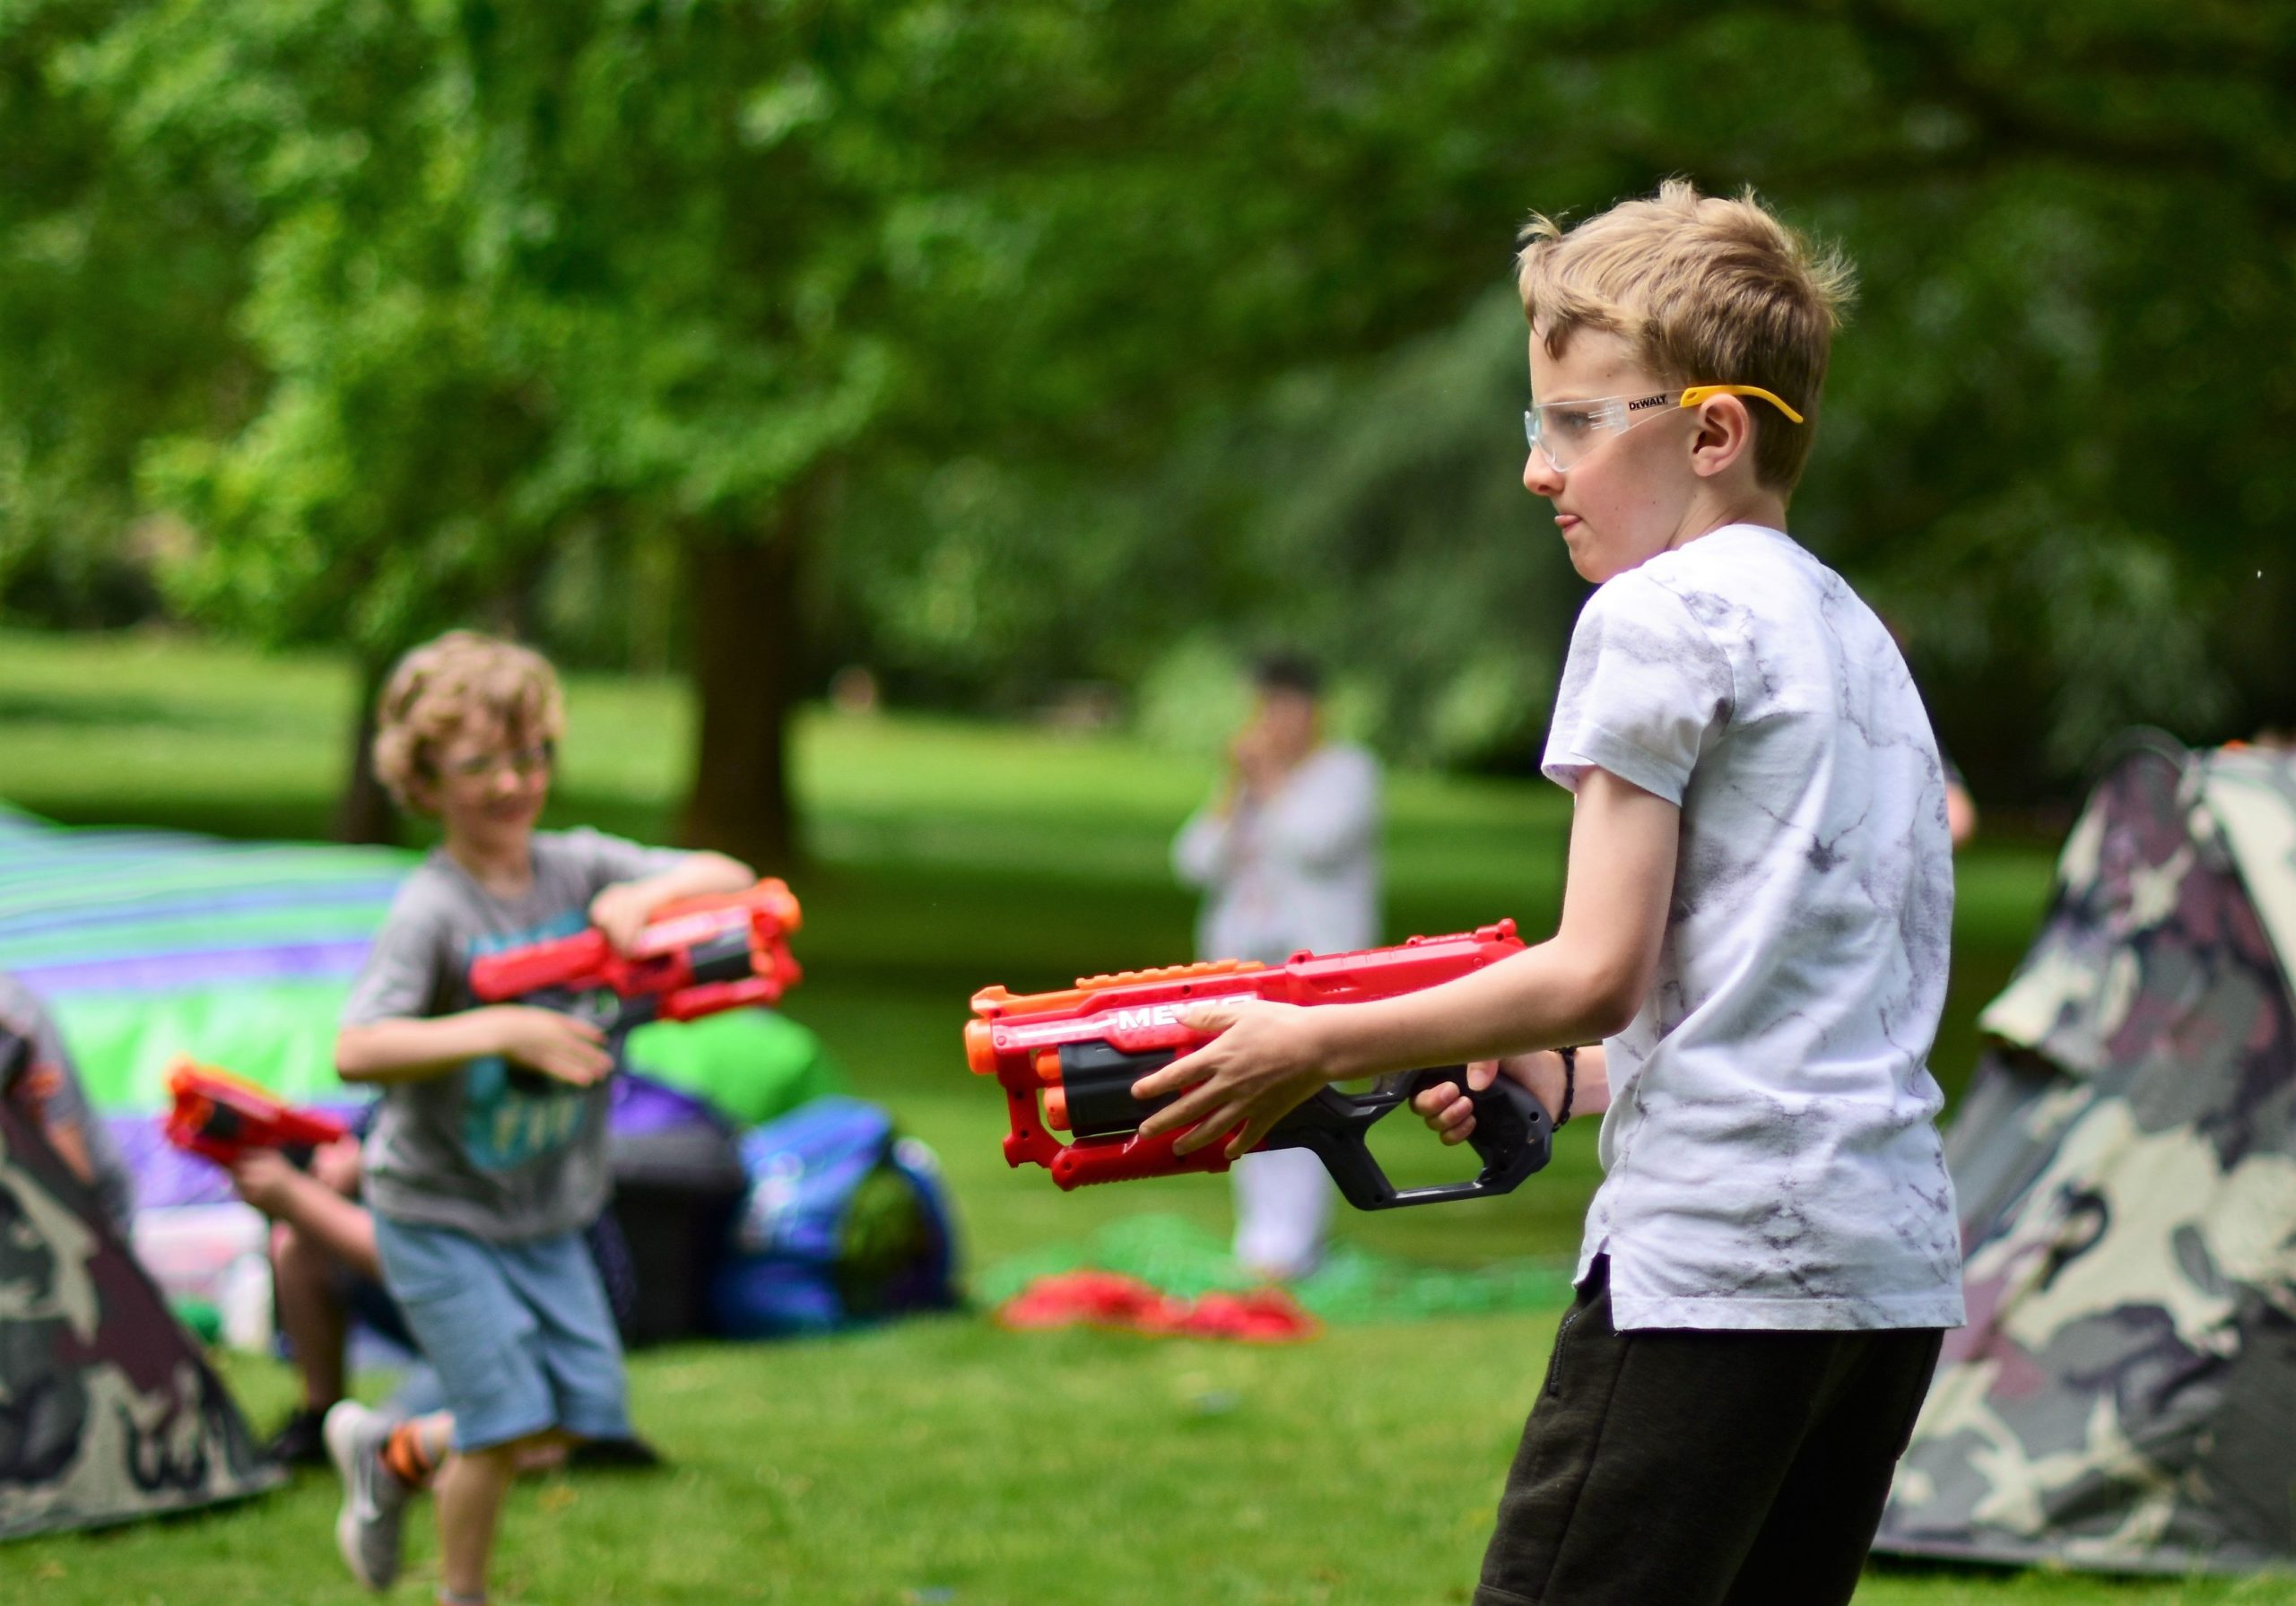 Nerf Wars Party with Jamie – Mobile / Customer Venue